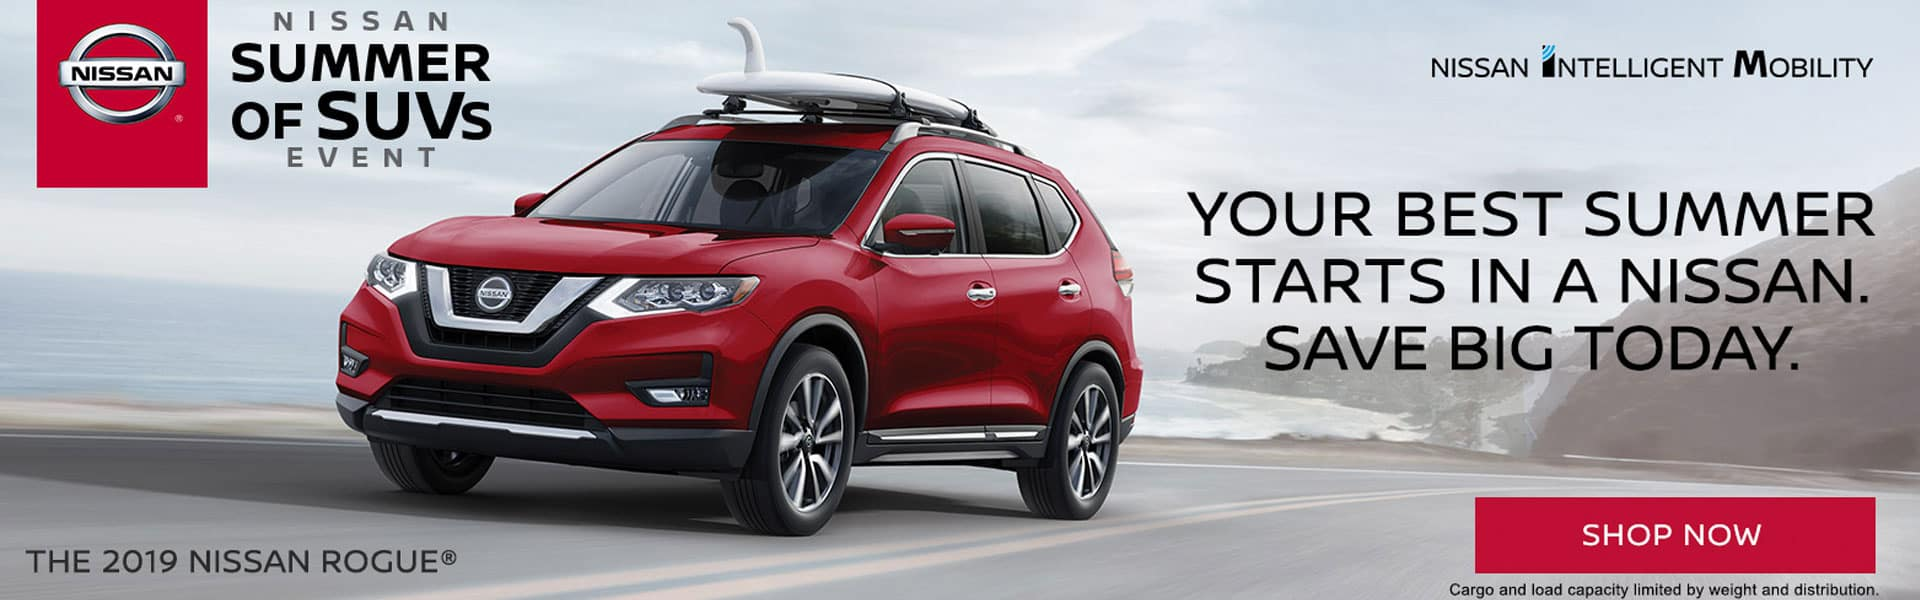 Boone Nissan new SUV sale